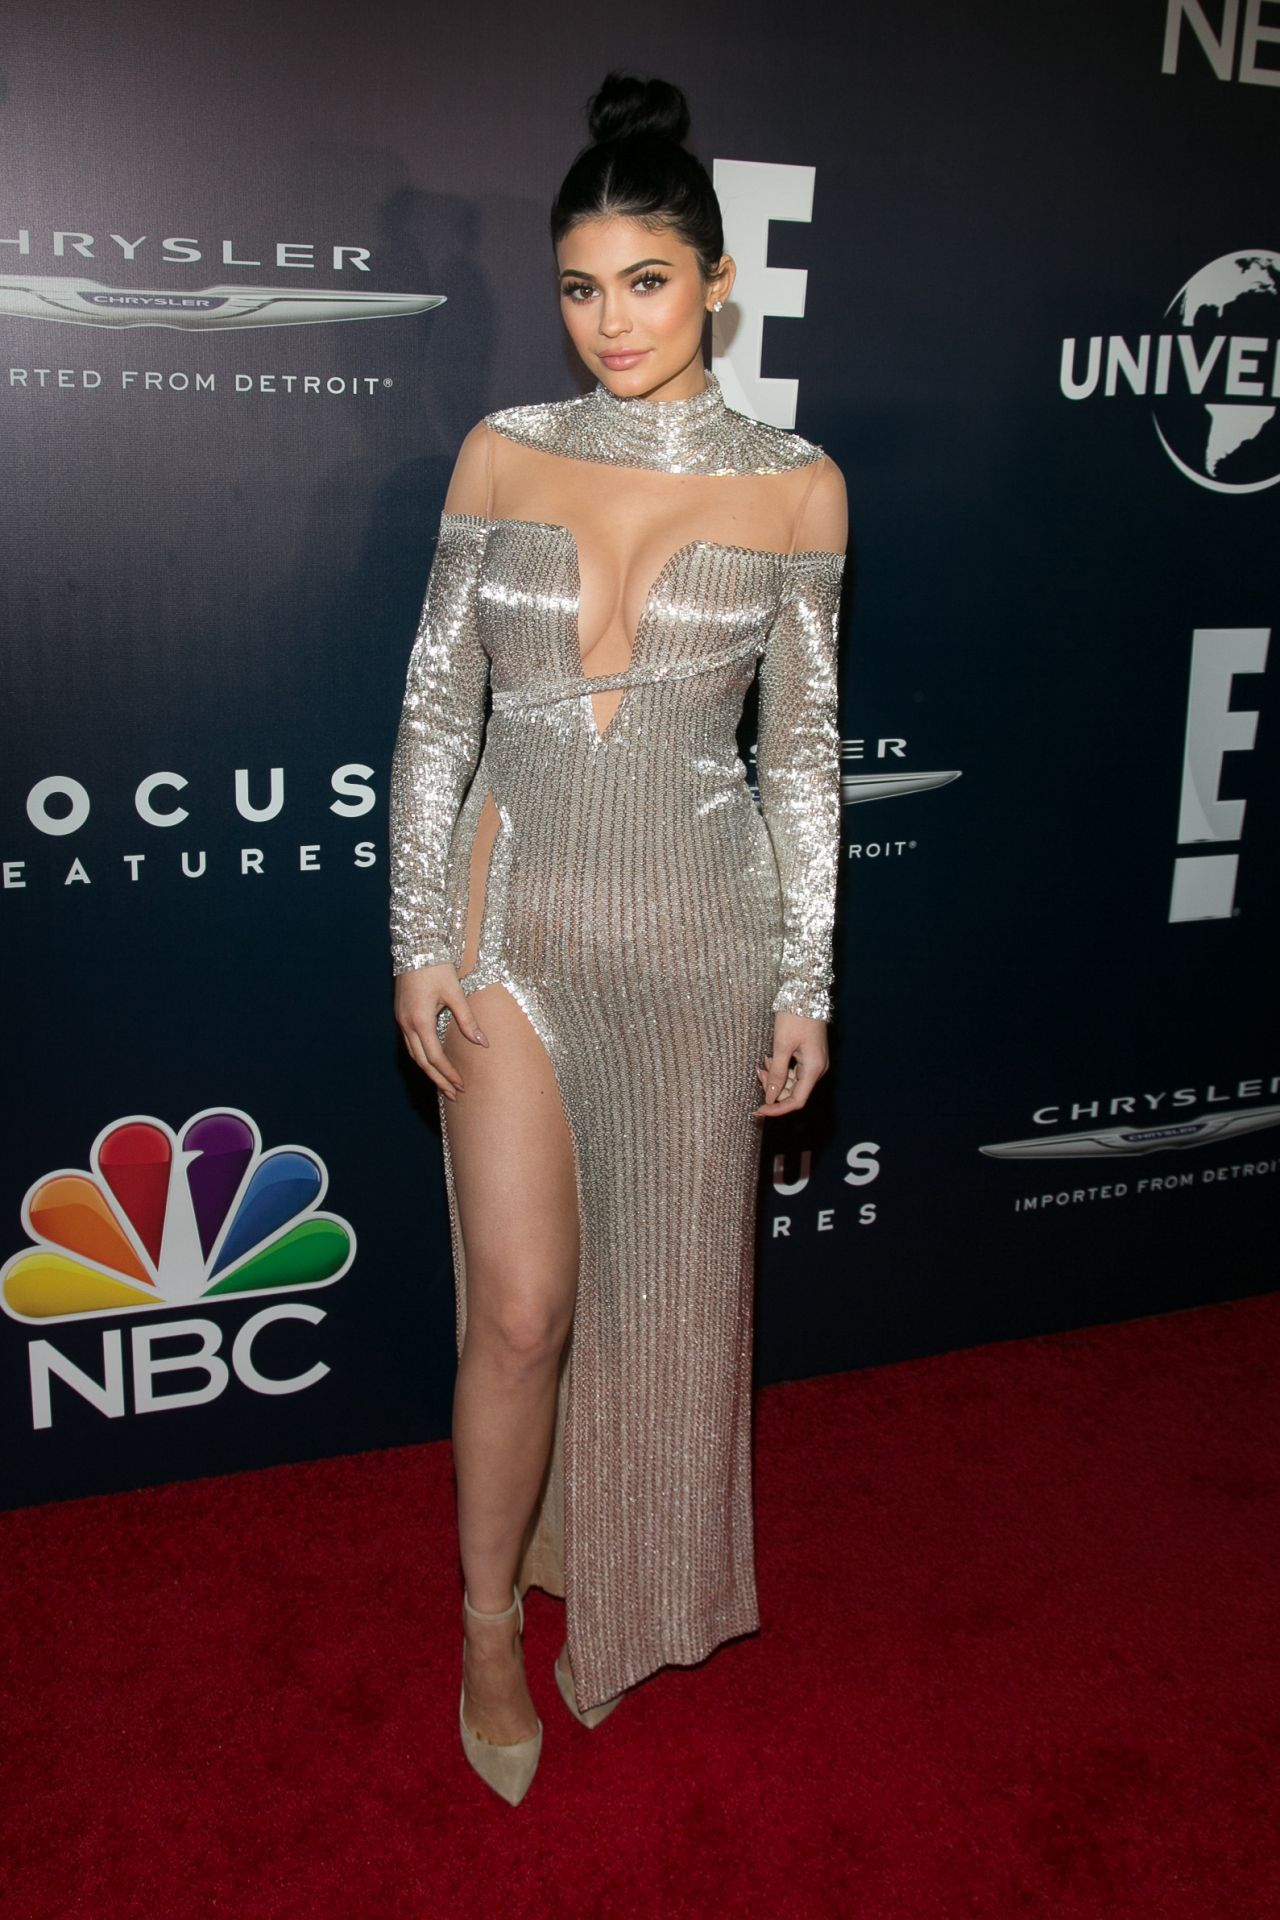 Kylie Jenner Universal Nbc Focus Features E